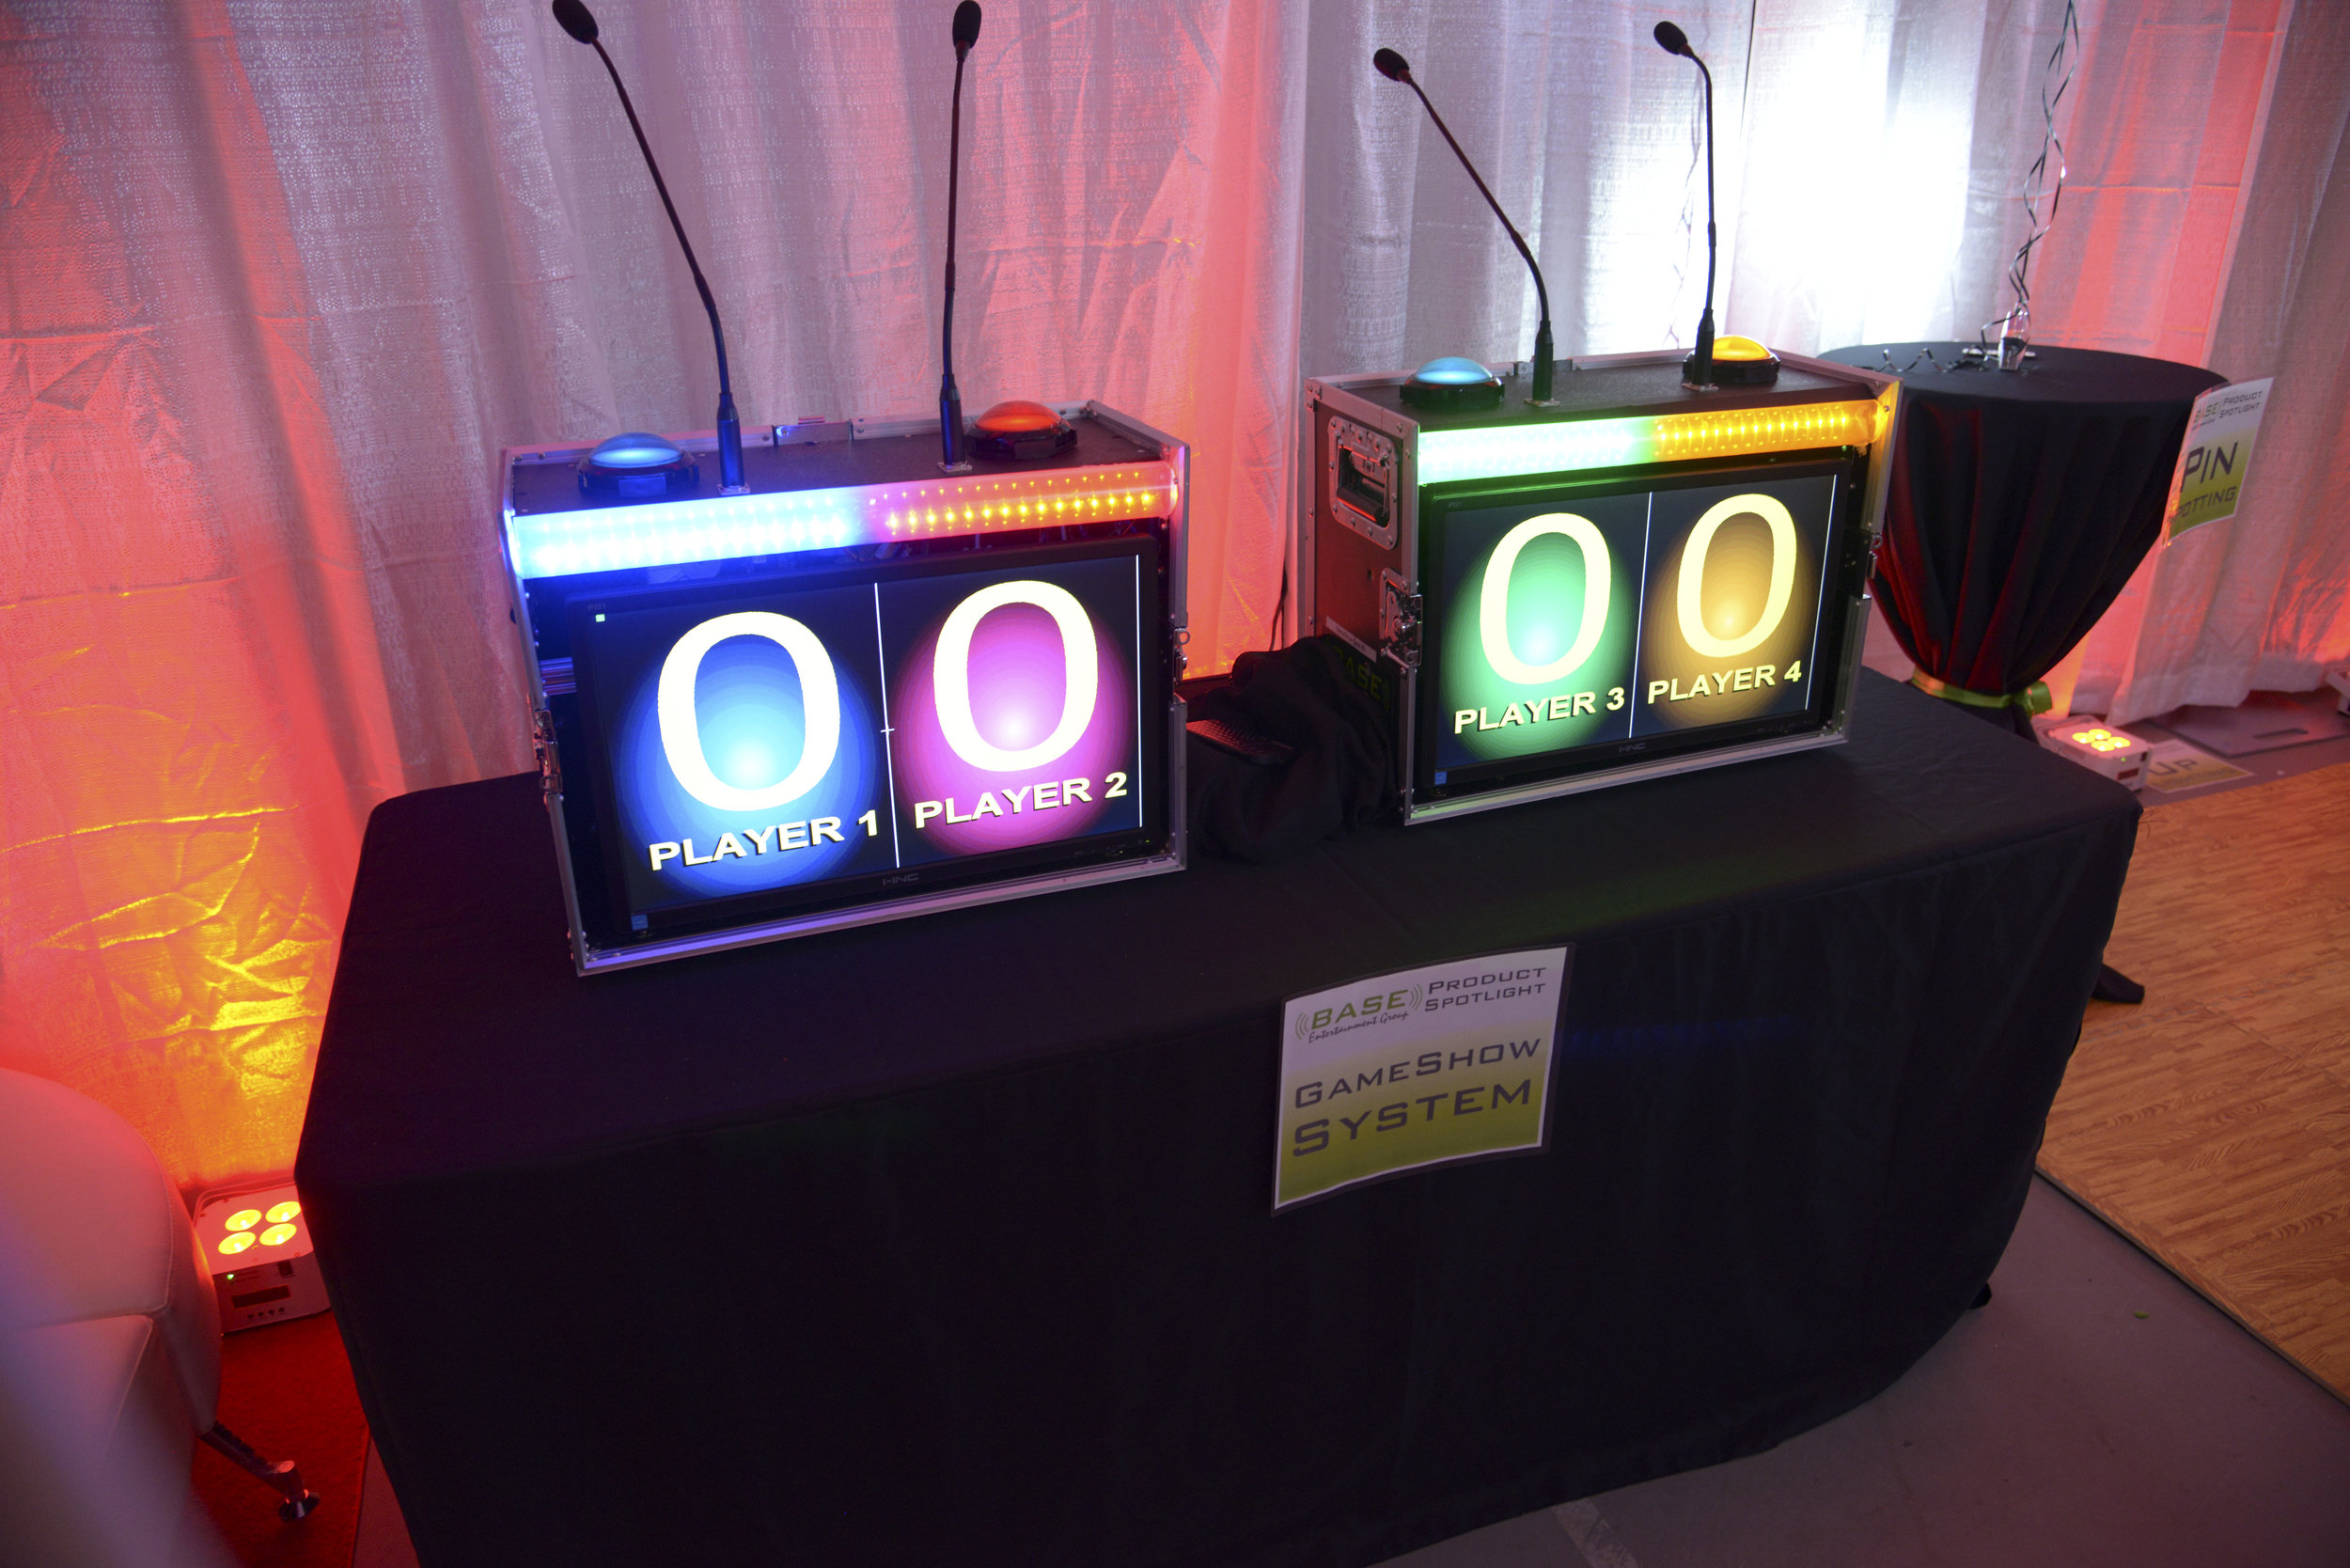 GameShow - A real, four player, gameshow system. The buzzers lock out the other players and the scores appear live. Do name that tune or even elementary trivia for some real fun!